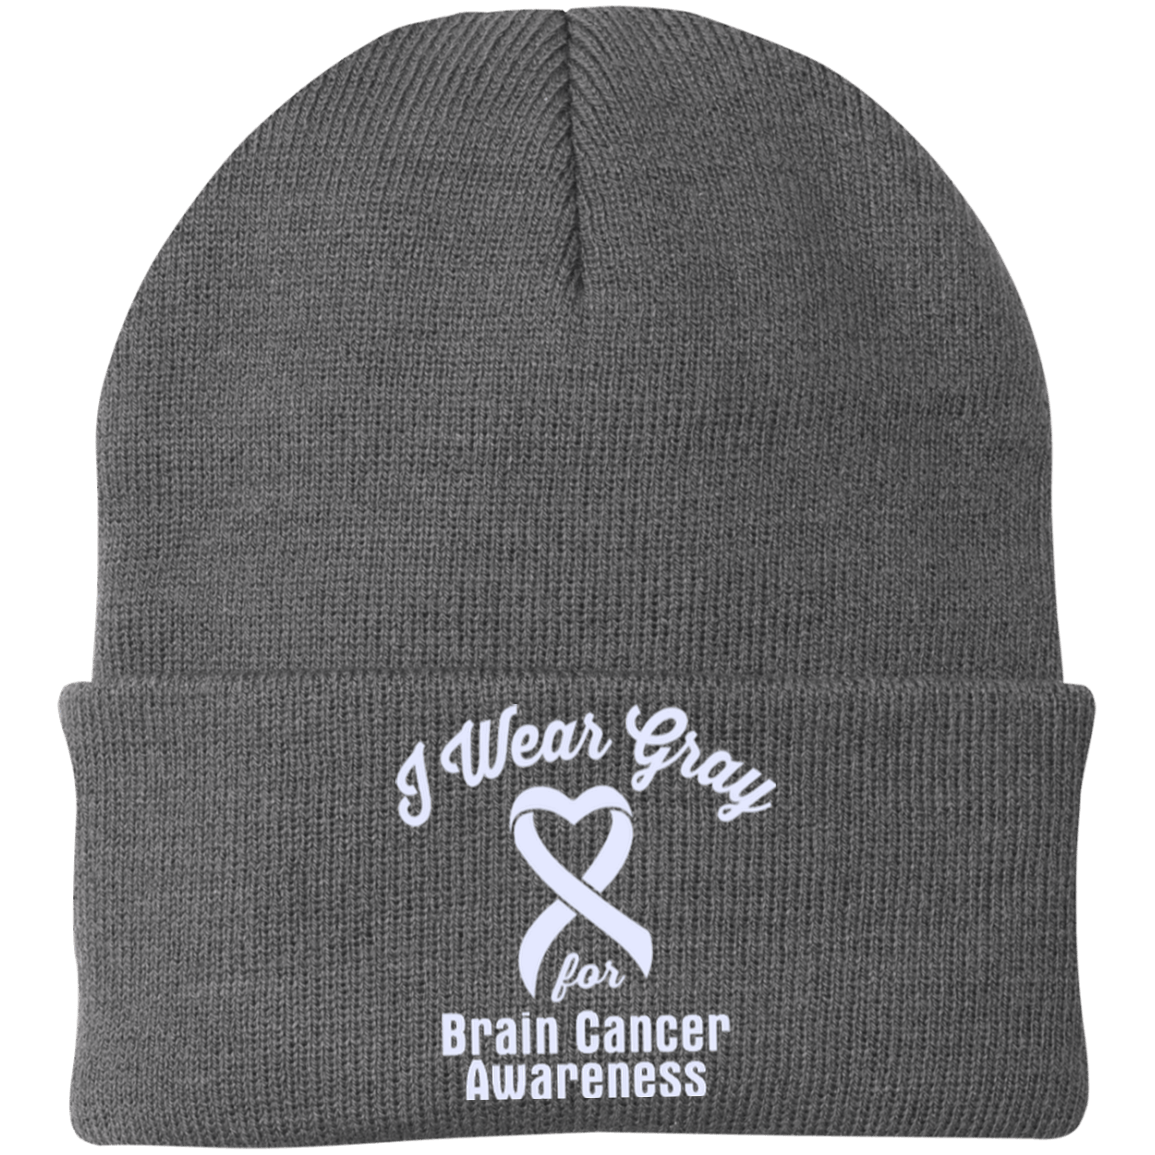 I Wear Gray For Brain Cancer - Knit Cap – The Awareness Store c86a1d30d3d